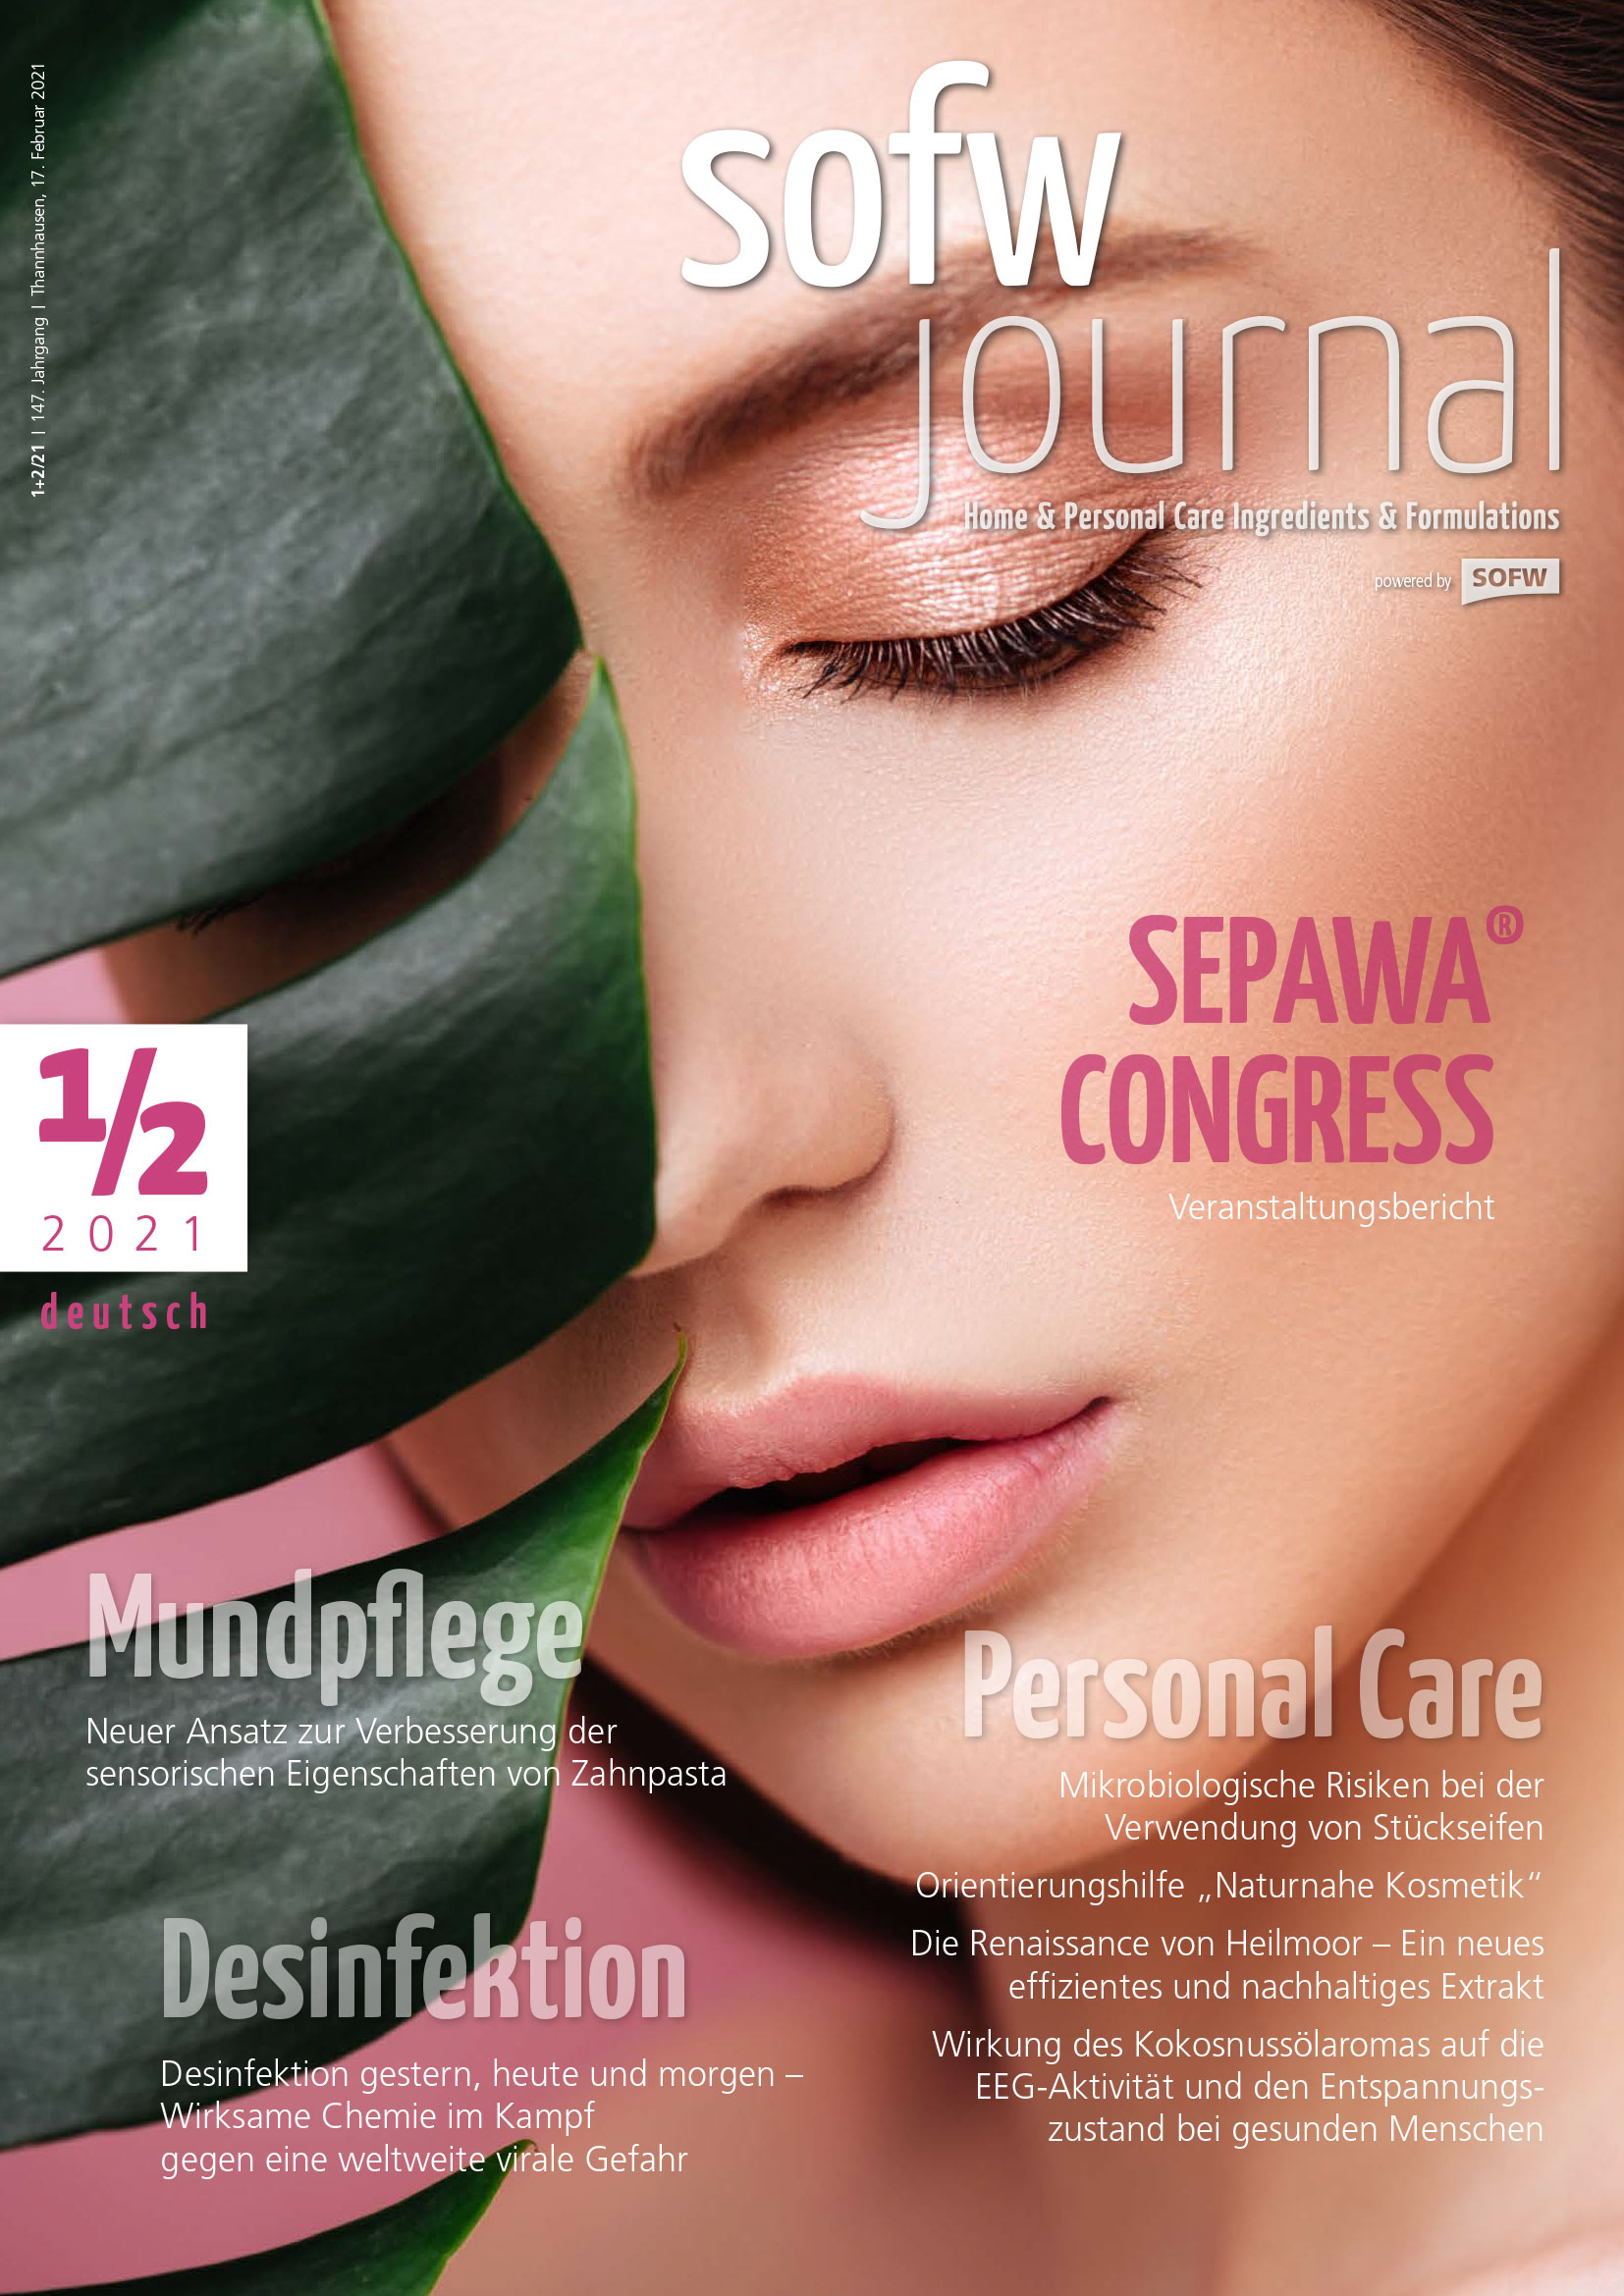 sofw_2101_ger_cover_1363244101